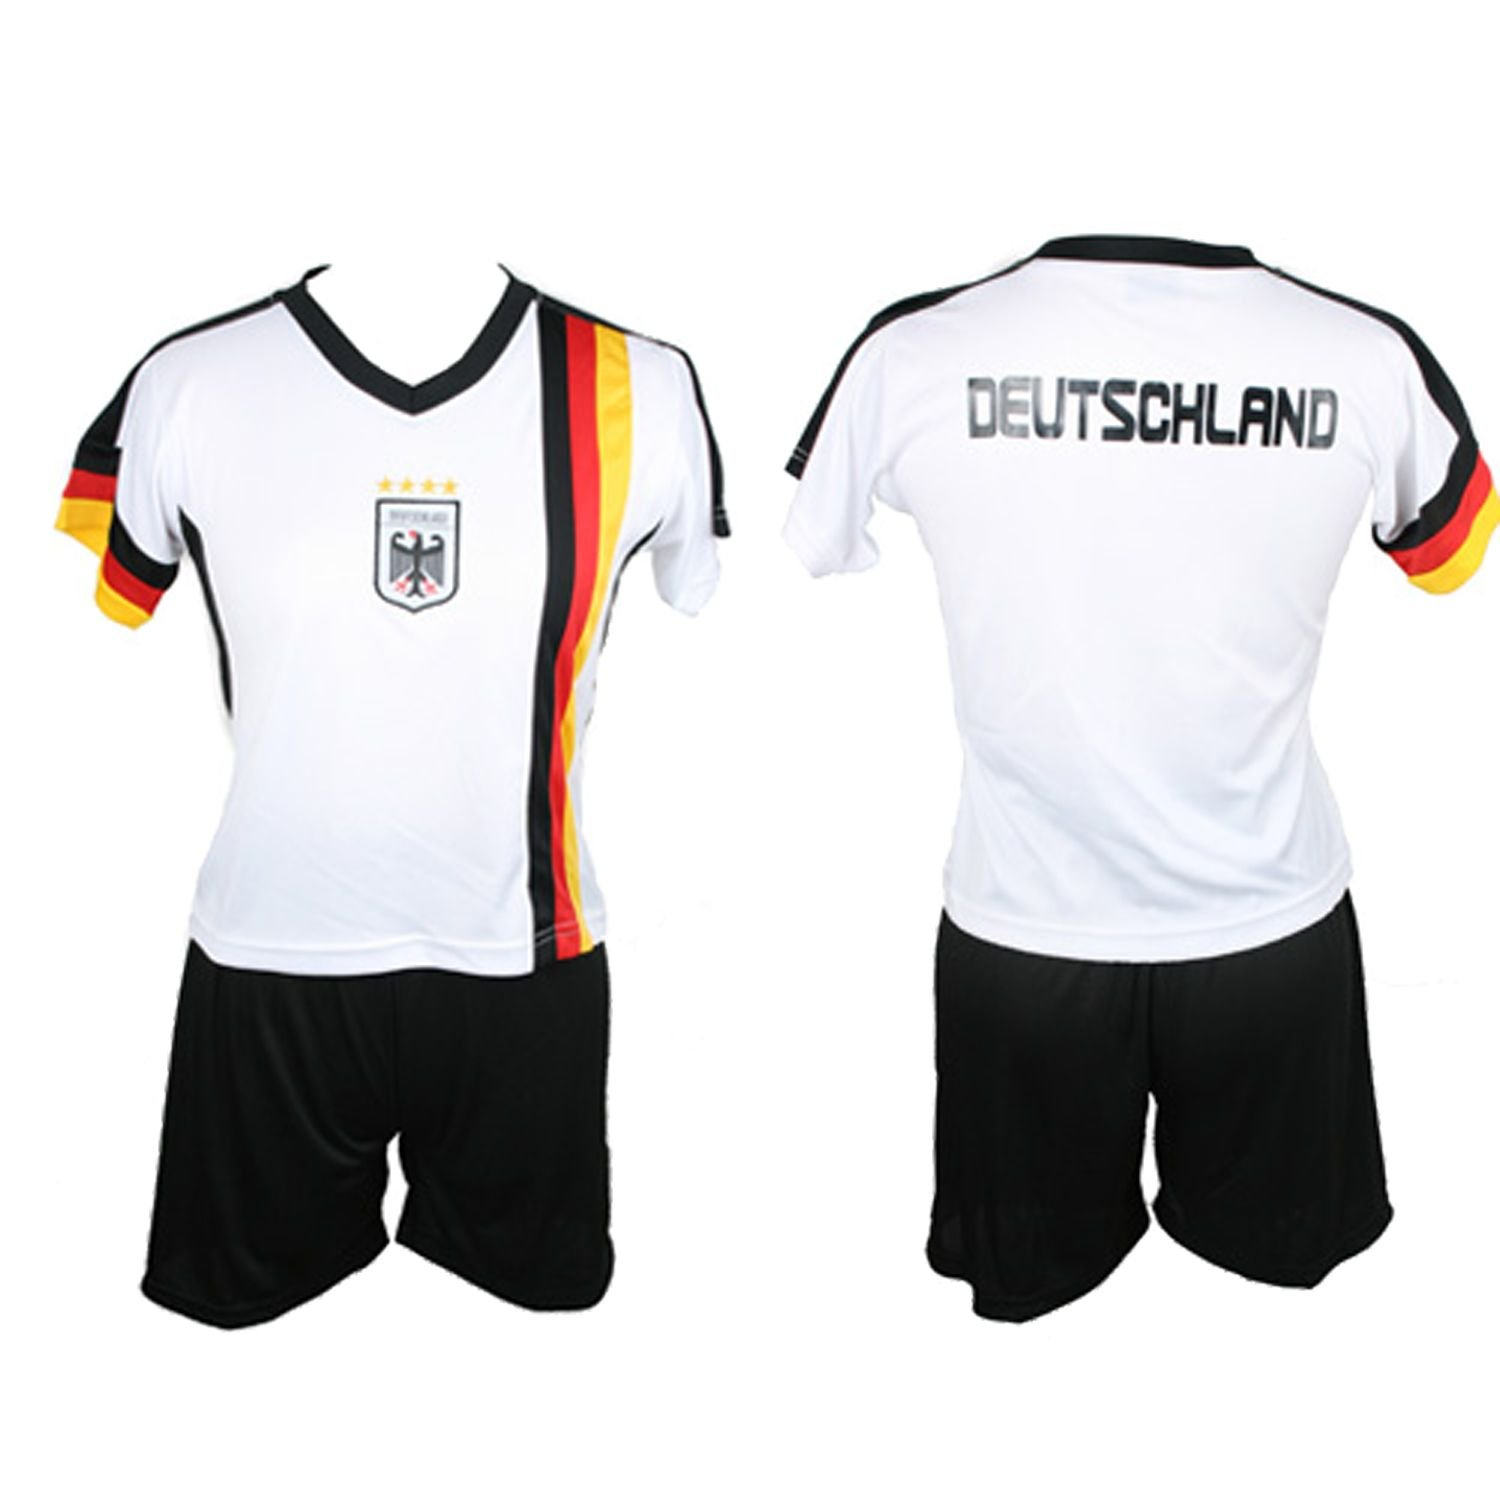 bee4d0b8f Antonio Germany Children s Jersey Set WM 2018 (96 104) White XS Size from  1996 to 5 Years  Amazon.co.uk  Sports   Outdoors